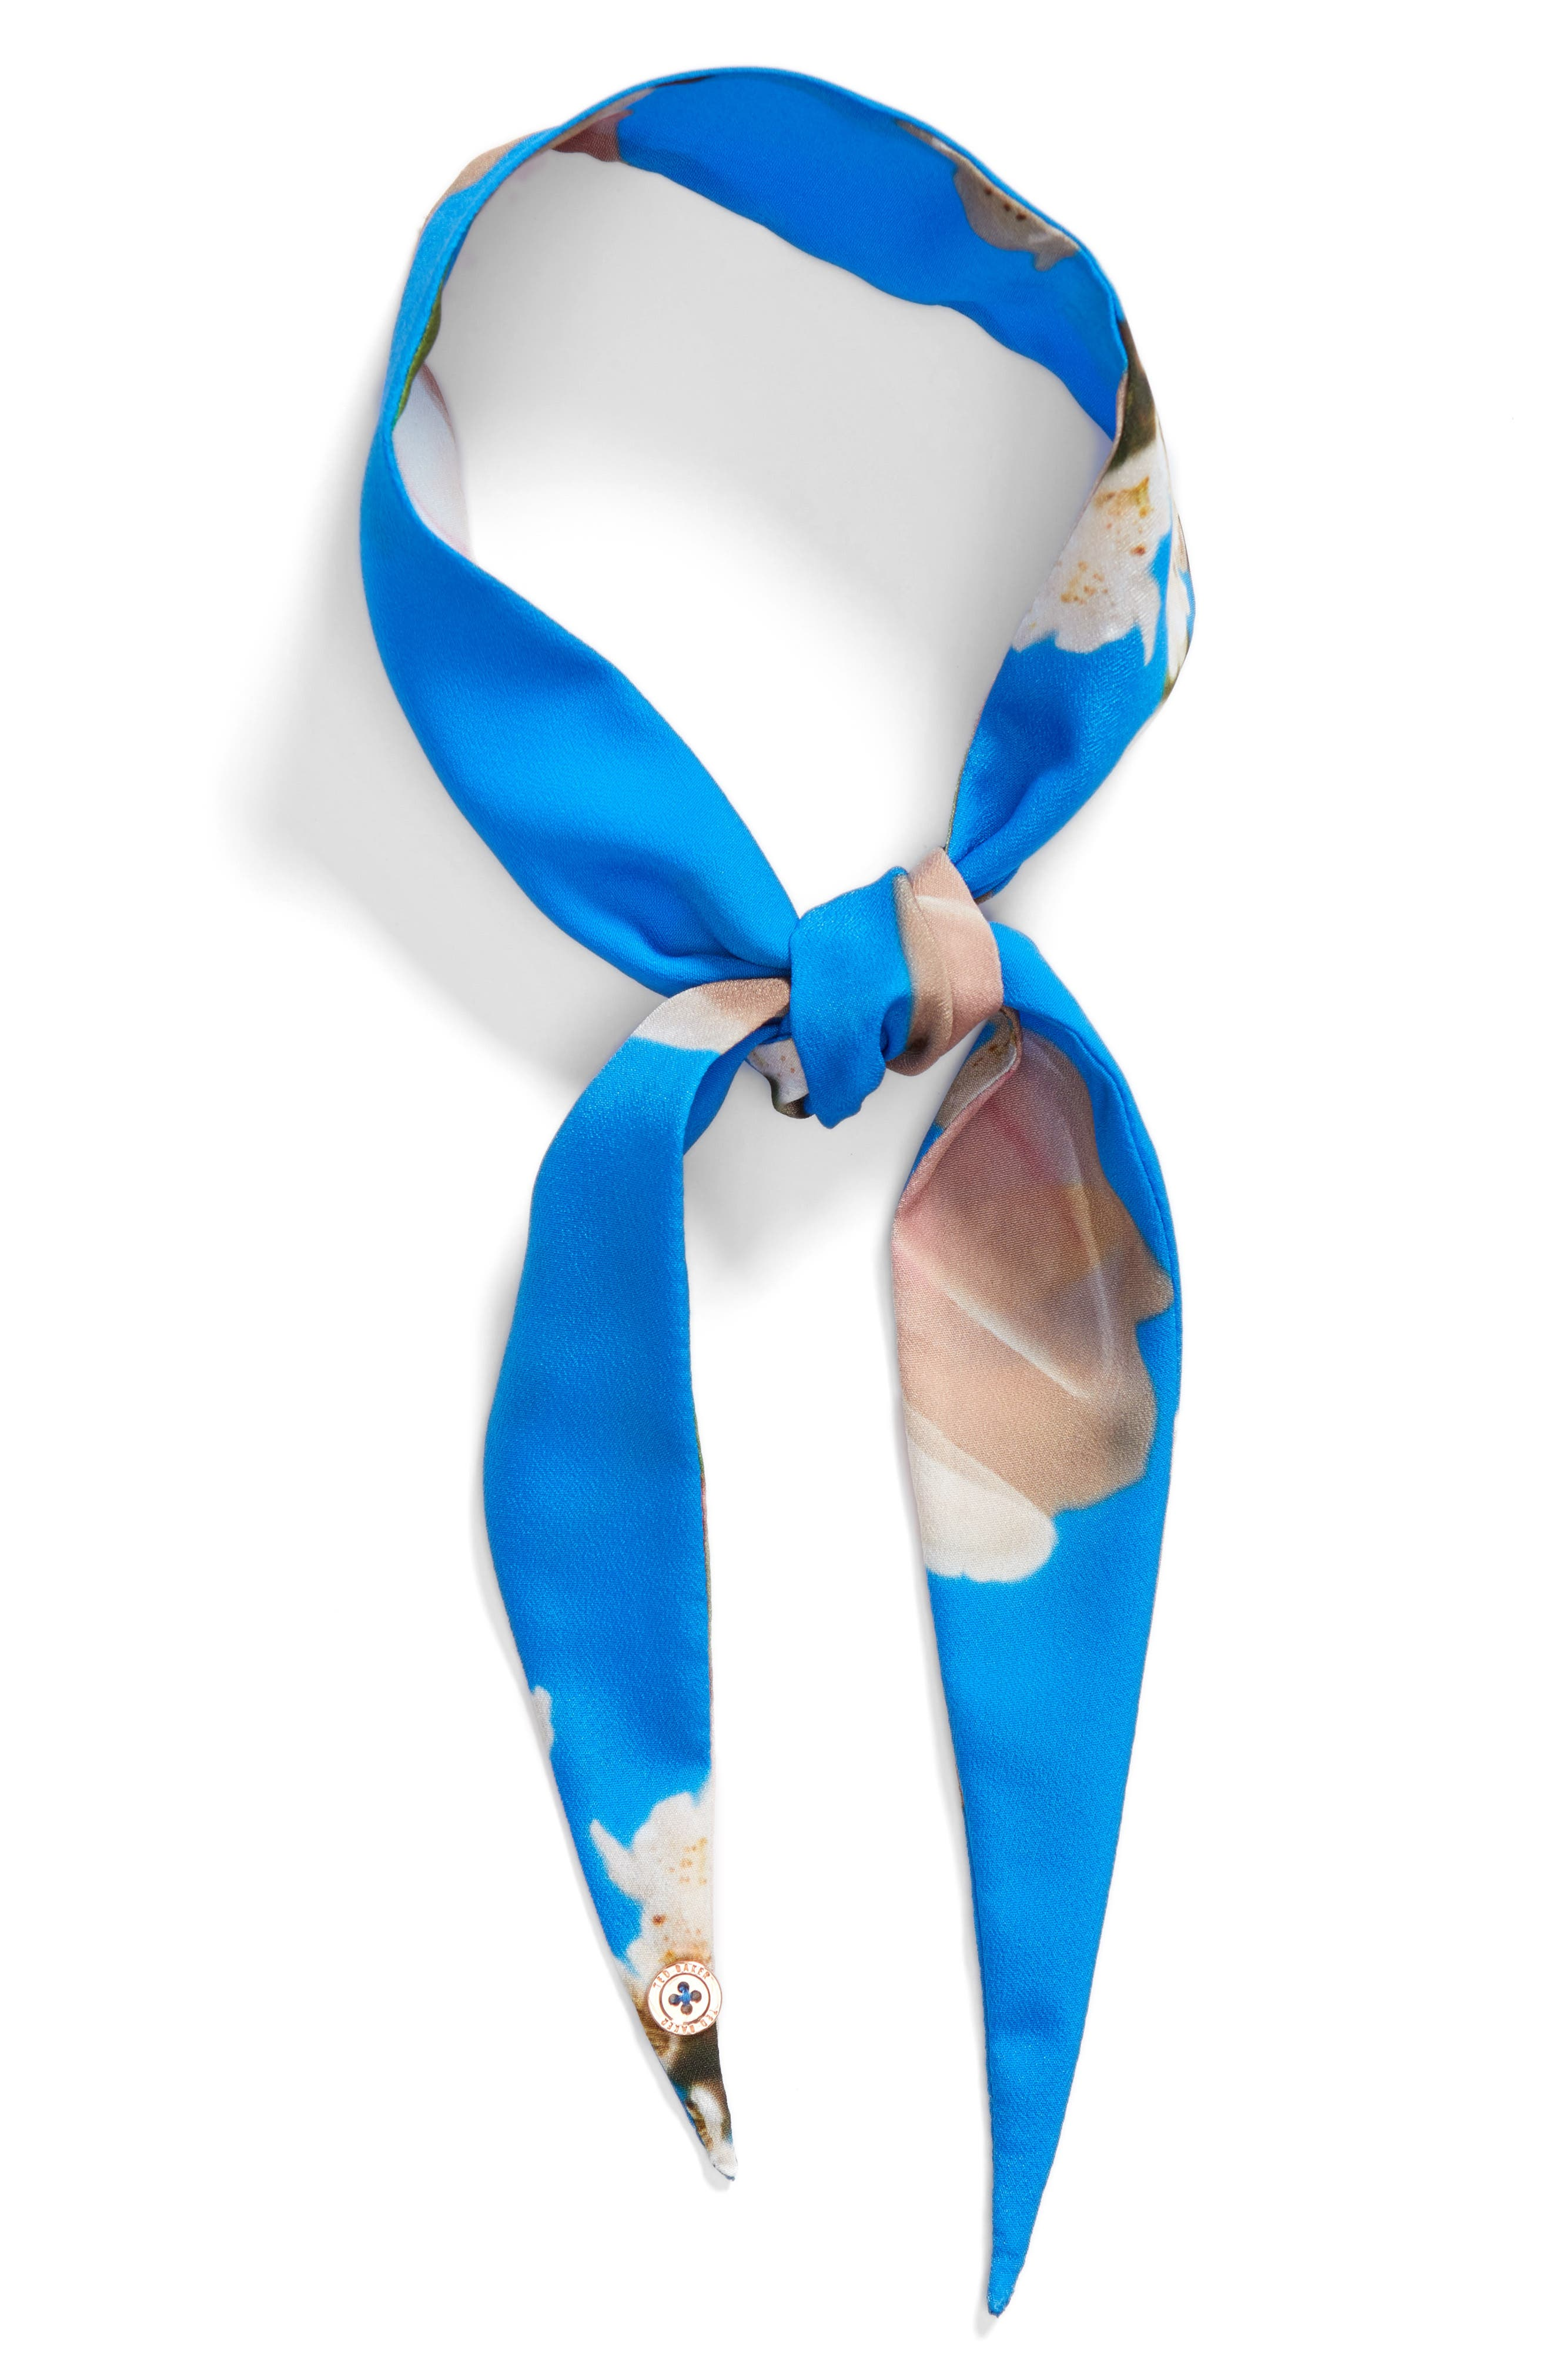 Harmony Floral Print Scarf,                             Alternate thumbnail 2, color,                             Bright Blue